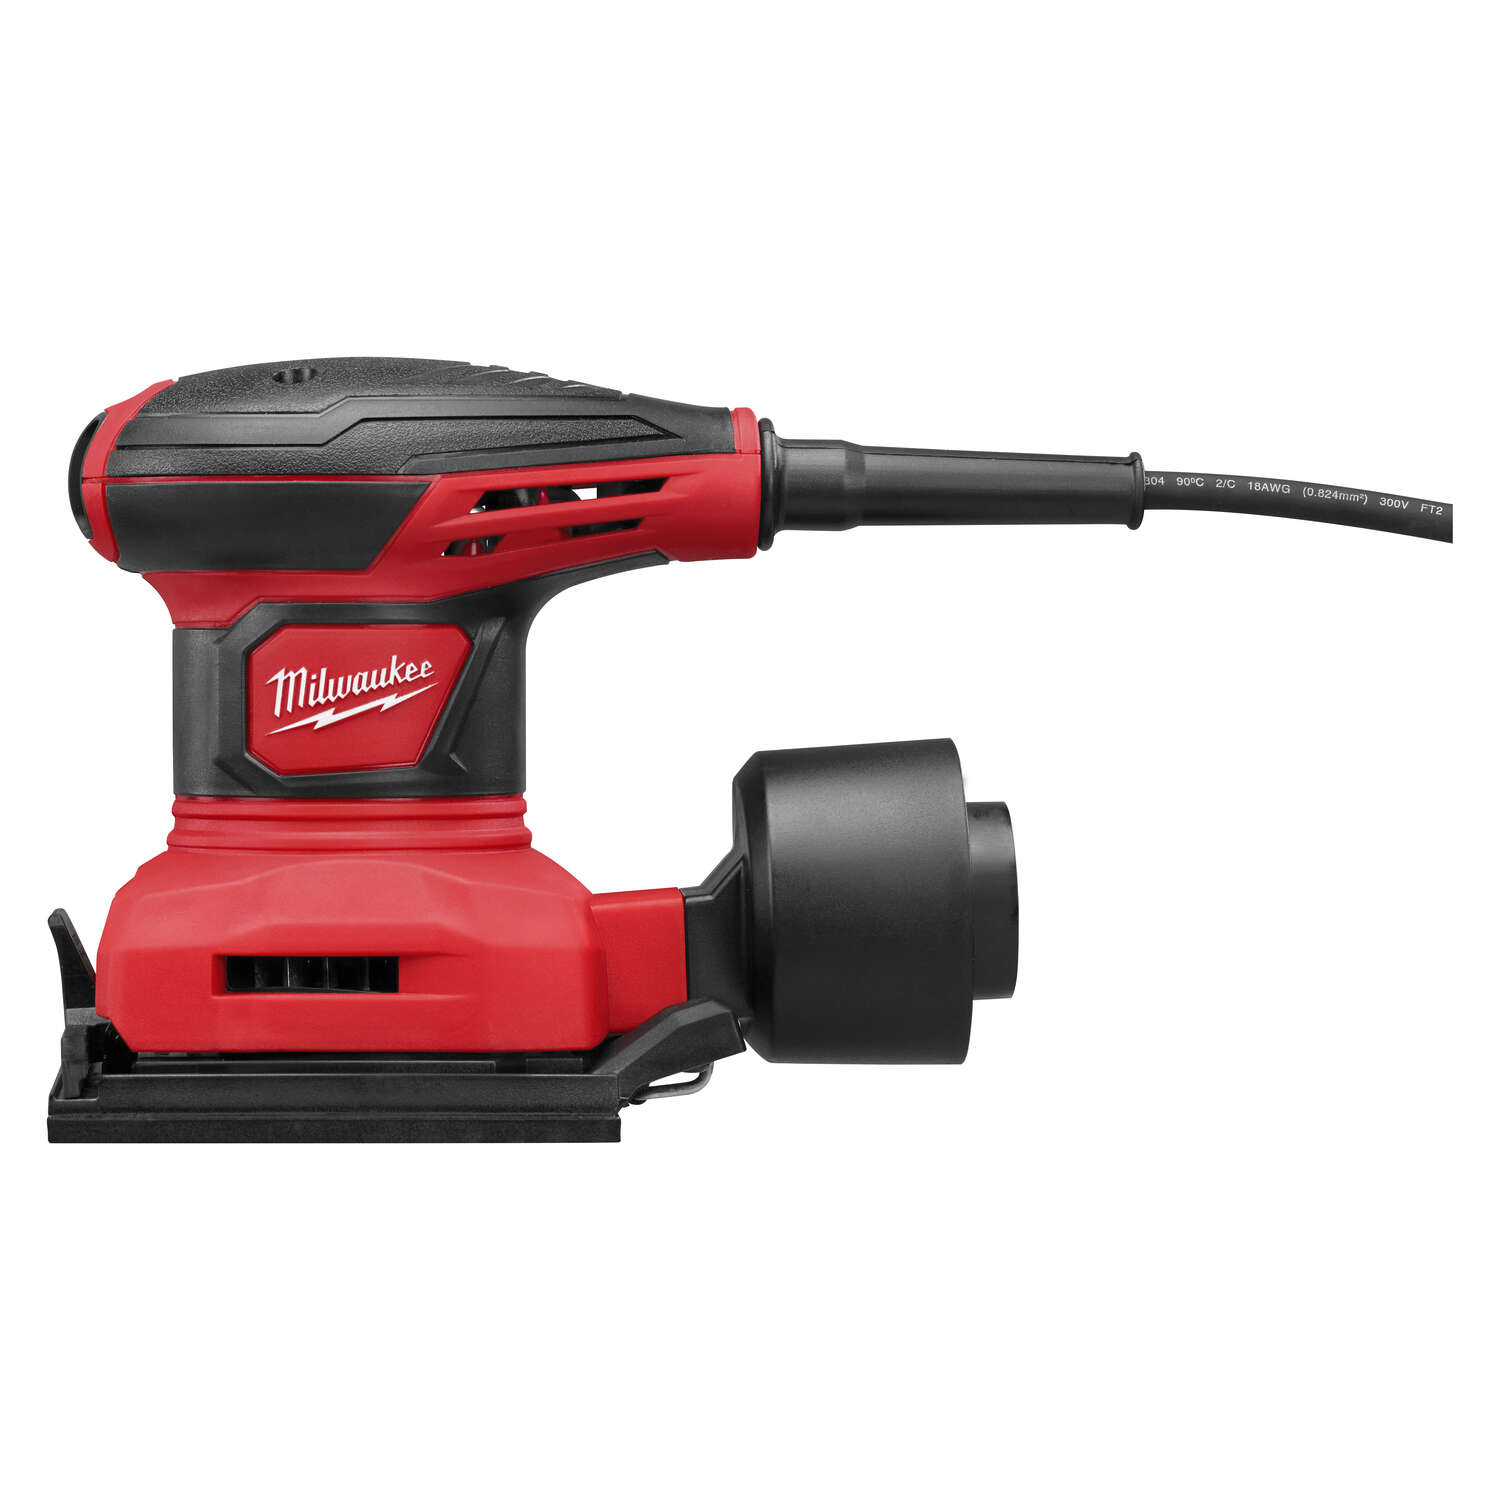 Milwaukee  Corded  1/4 in. Kit 3 amps Complete Sander  14000 opm Red  120 volt